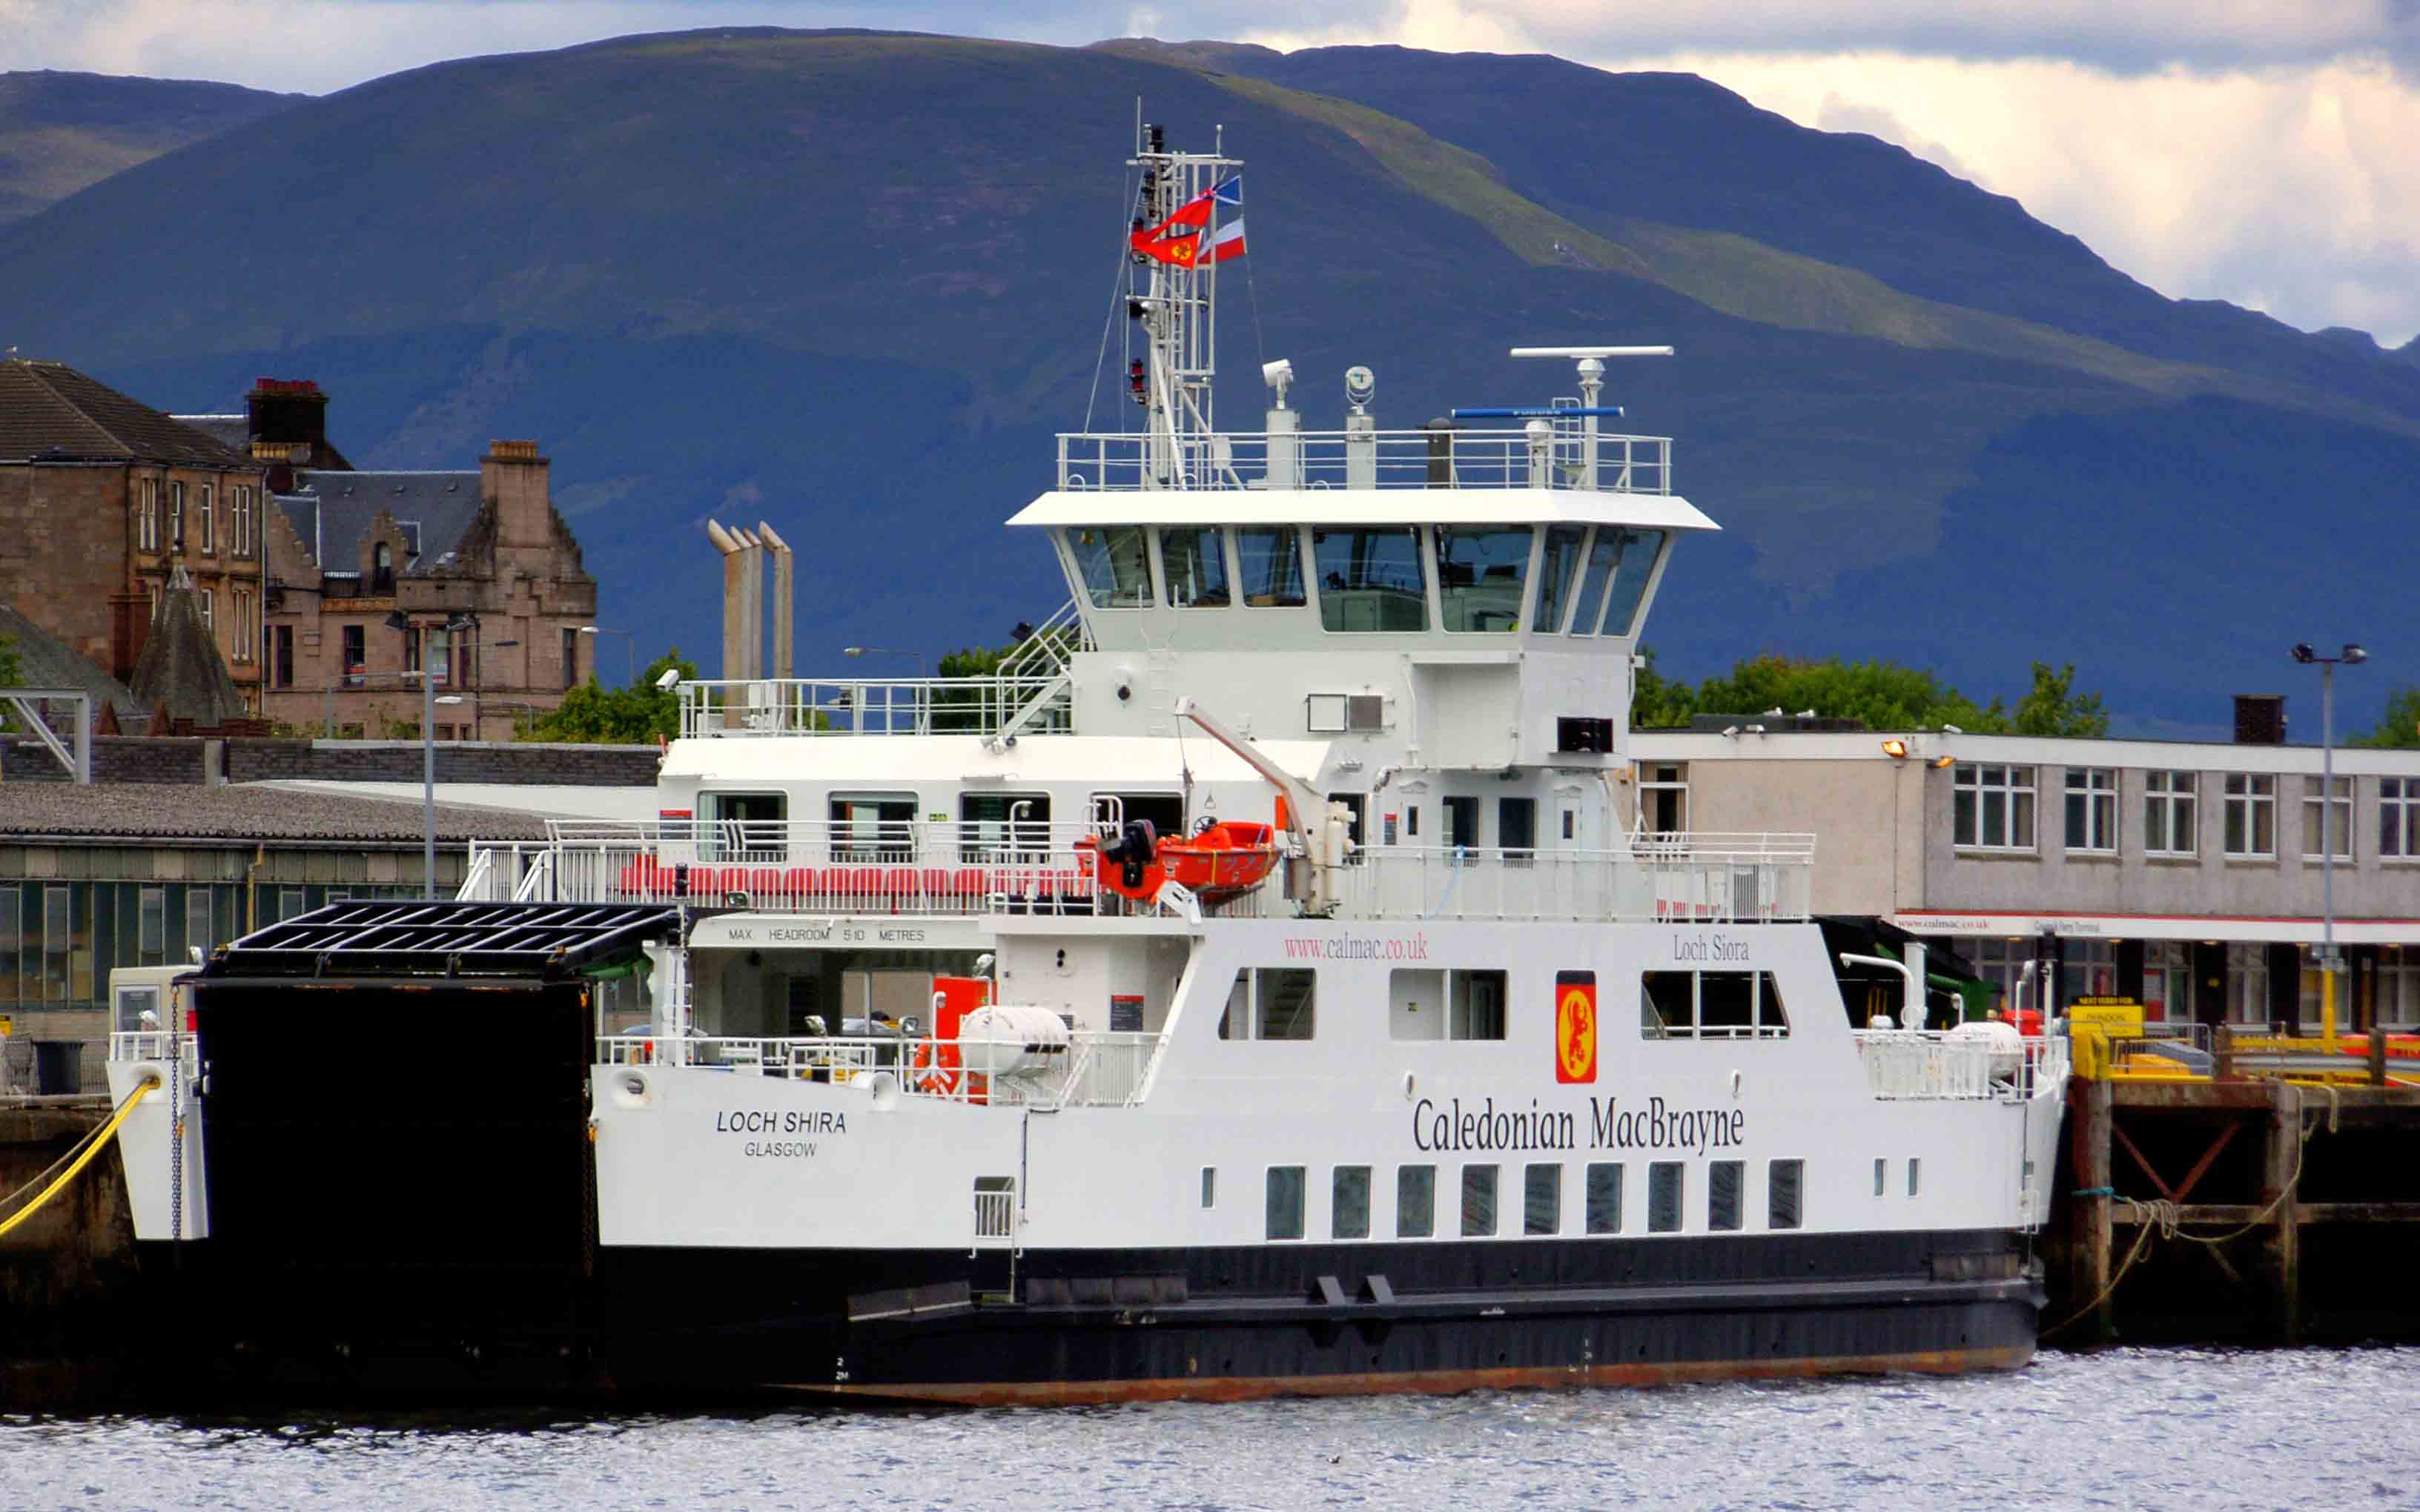 Loch Shira at Gourock prior to entering service